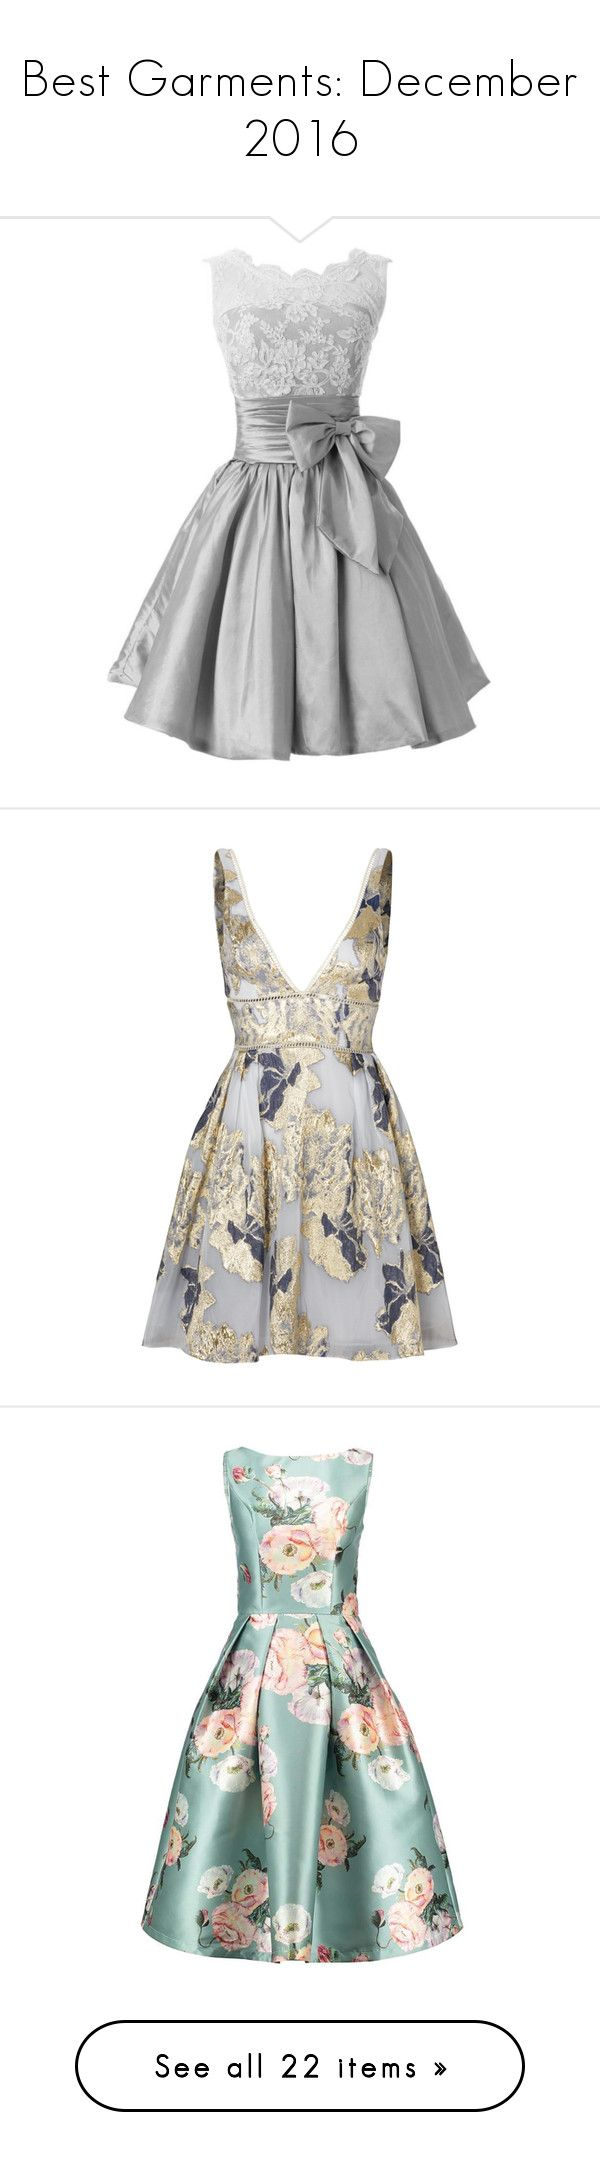 """""""Best Garments: December 2016"""" by sydsydrox ❤ liked on Polyvore featuring dresses, gowns, holiday party dresses, going out dresses, night out dresses, homecoming dresses, homecoming gowns, vestidos, floral print dress and flower printed dress"""